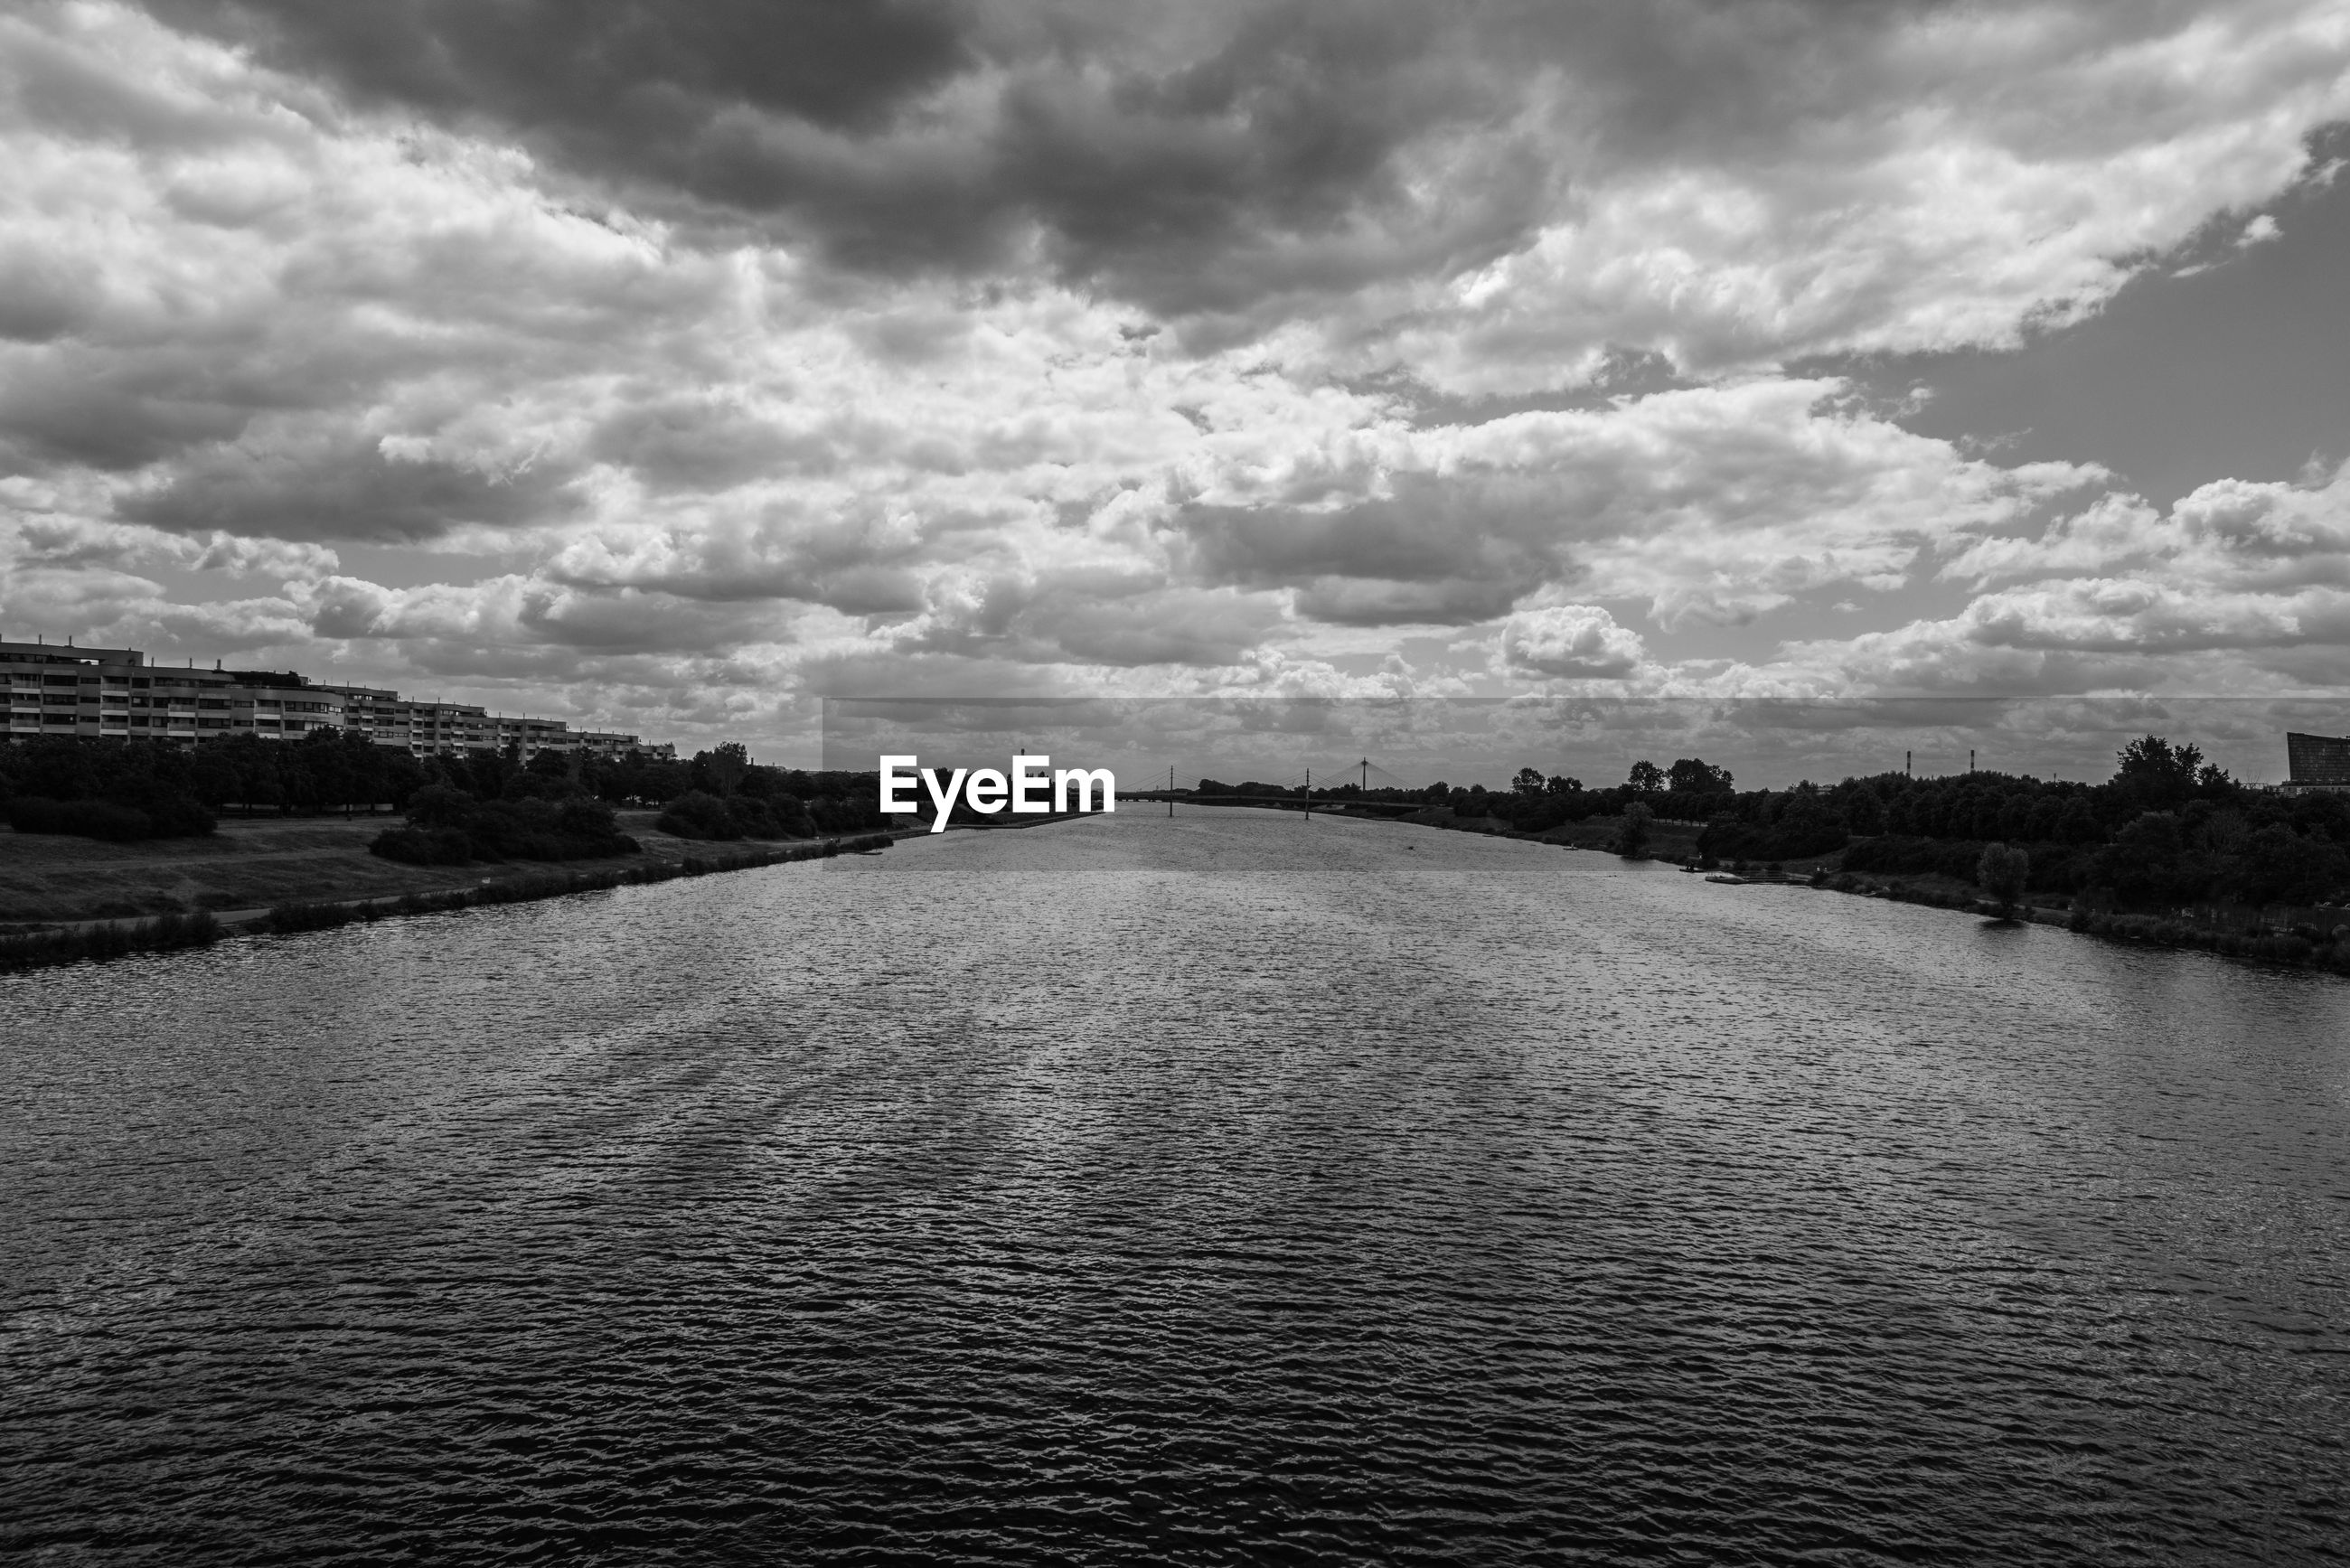 VIEW OF RIVER AGAINST SKY